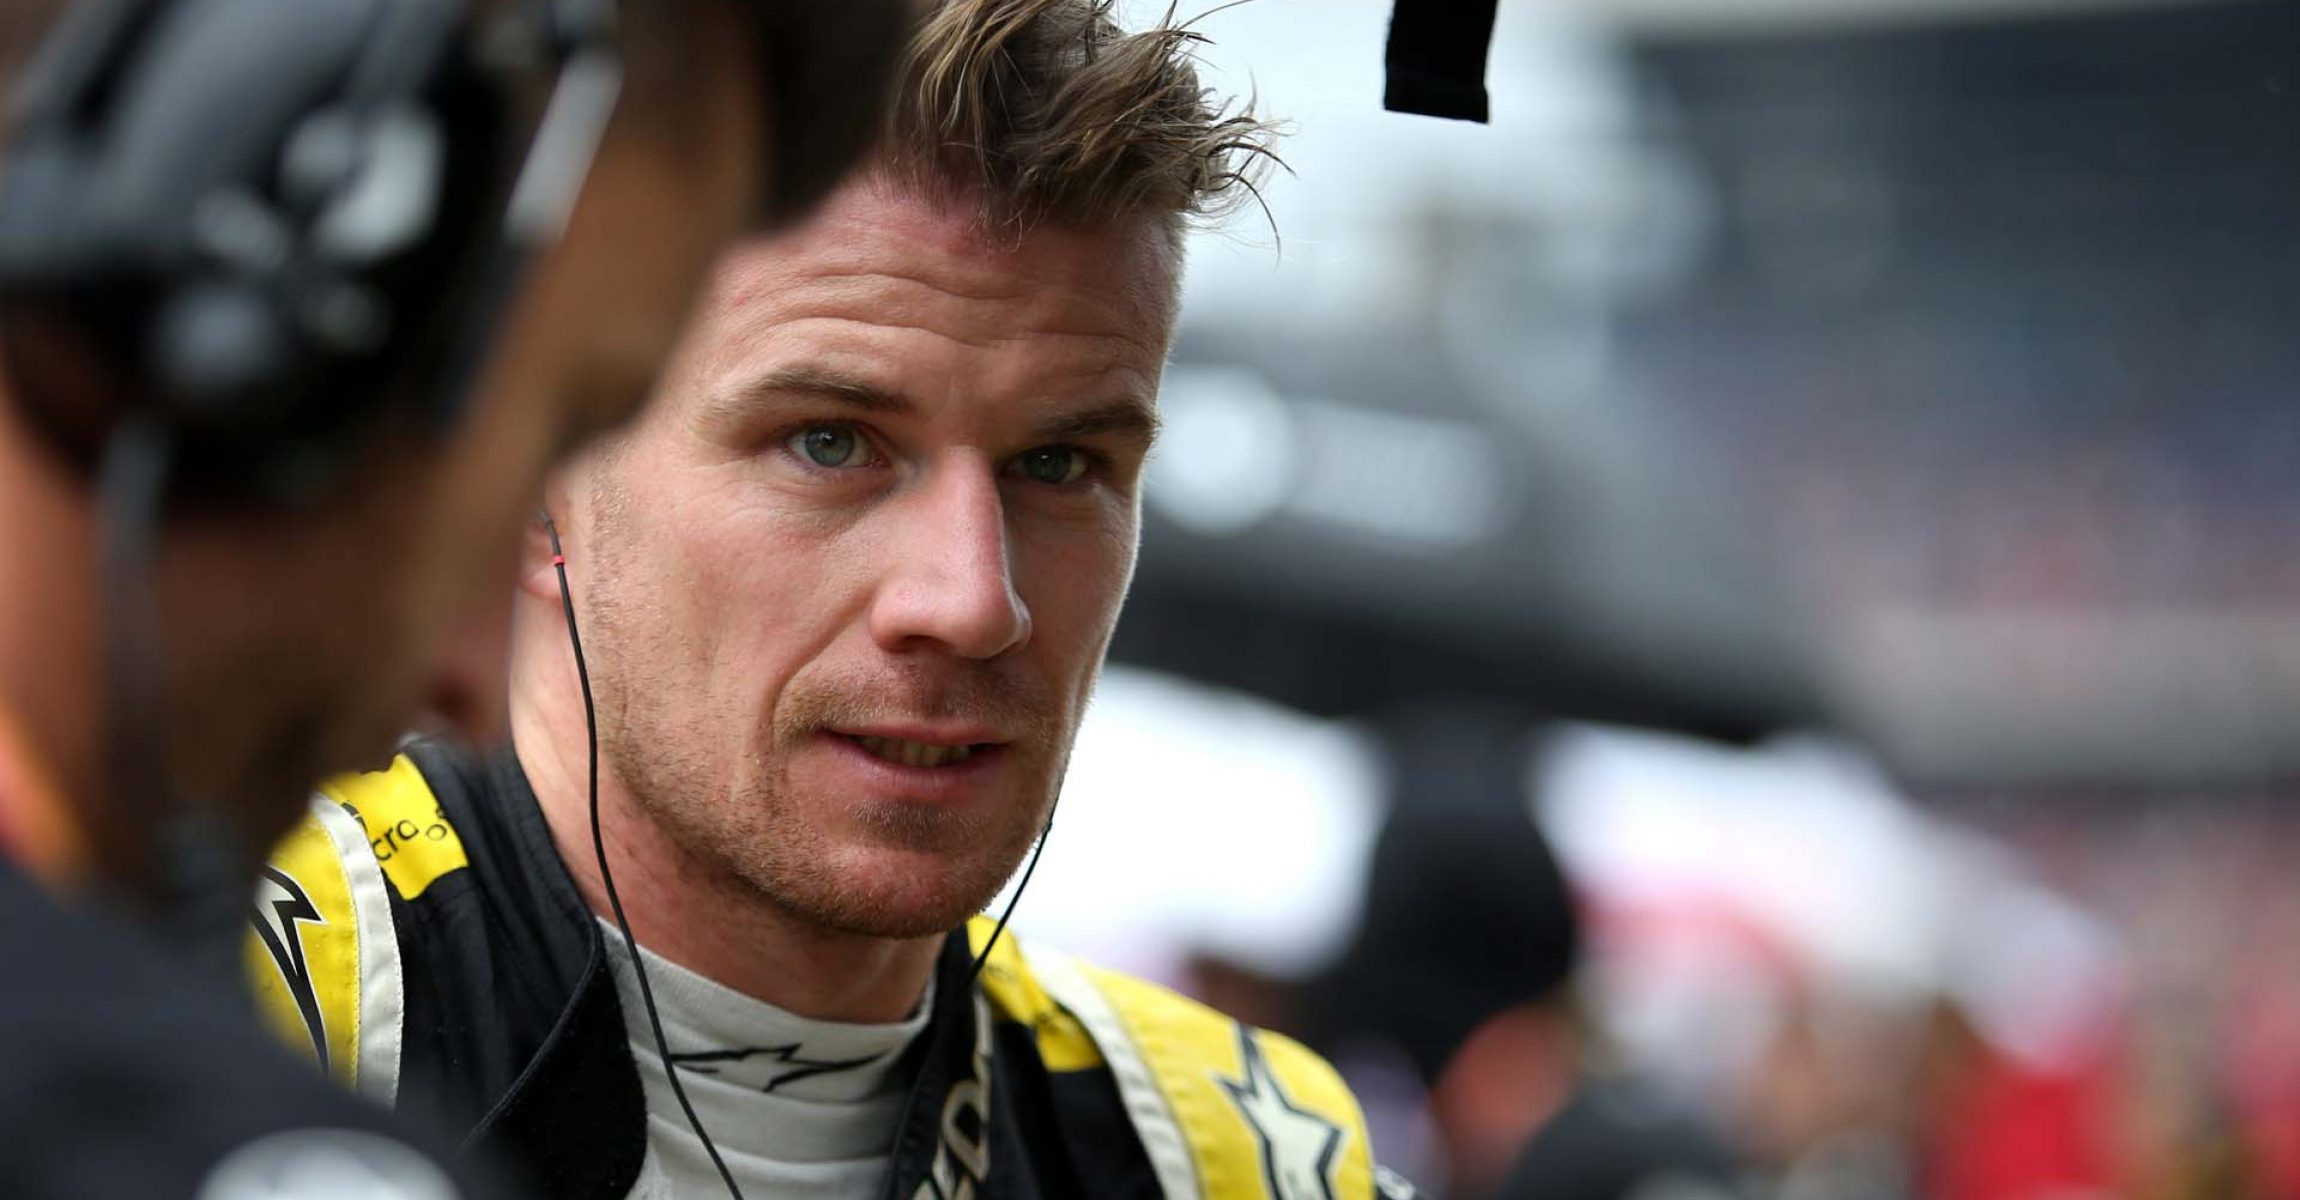 Nico Hulkenberg (GER) Renault F1 Team on the grid. German Grand Prix, Sunday 28th July 2019. Hockenheim, Germany.